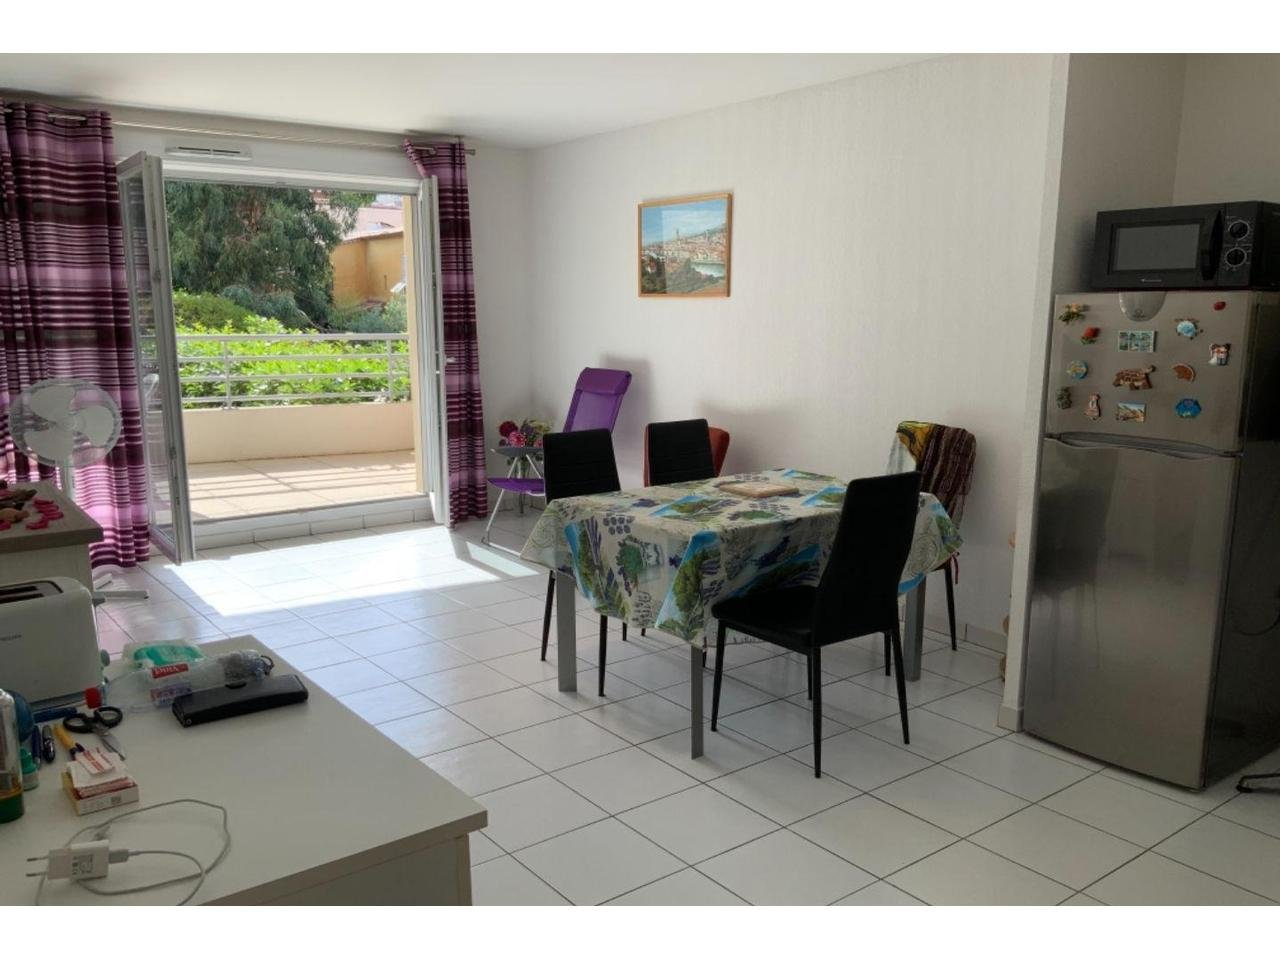 Appartement  3 Rooms 62.17m2  for sale   273 000 €